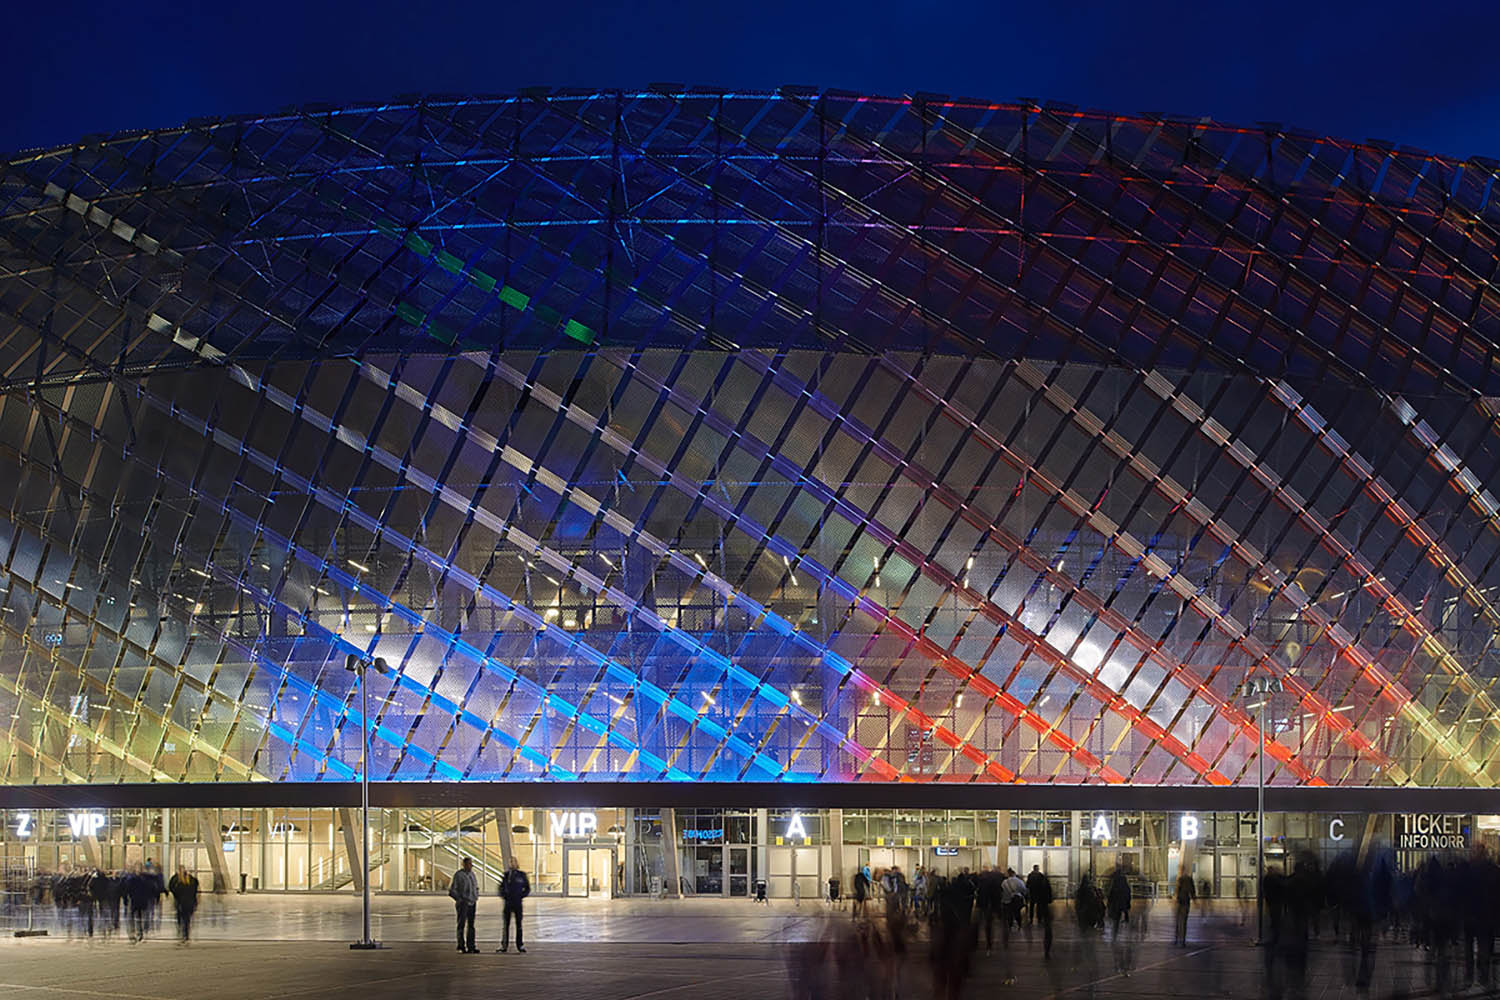 Tele2 Arena, Stockholm design by White arkitekter